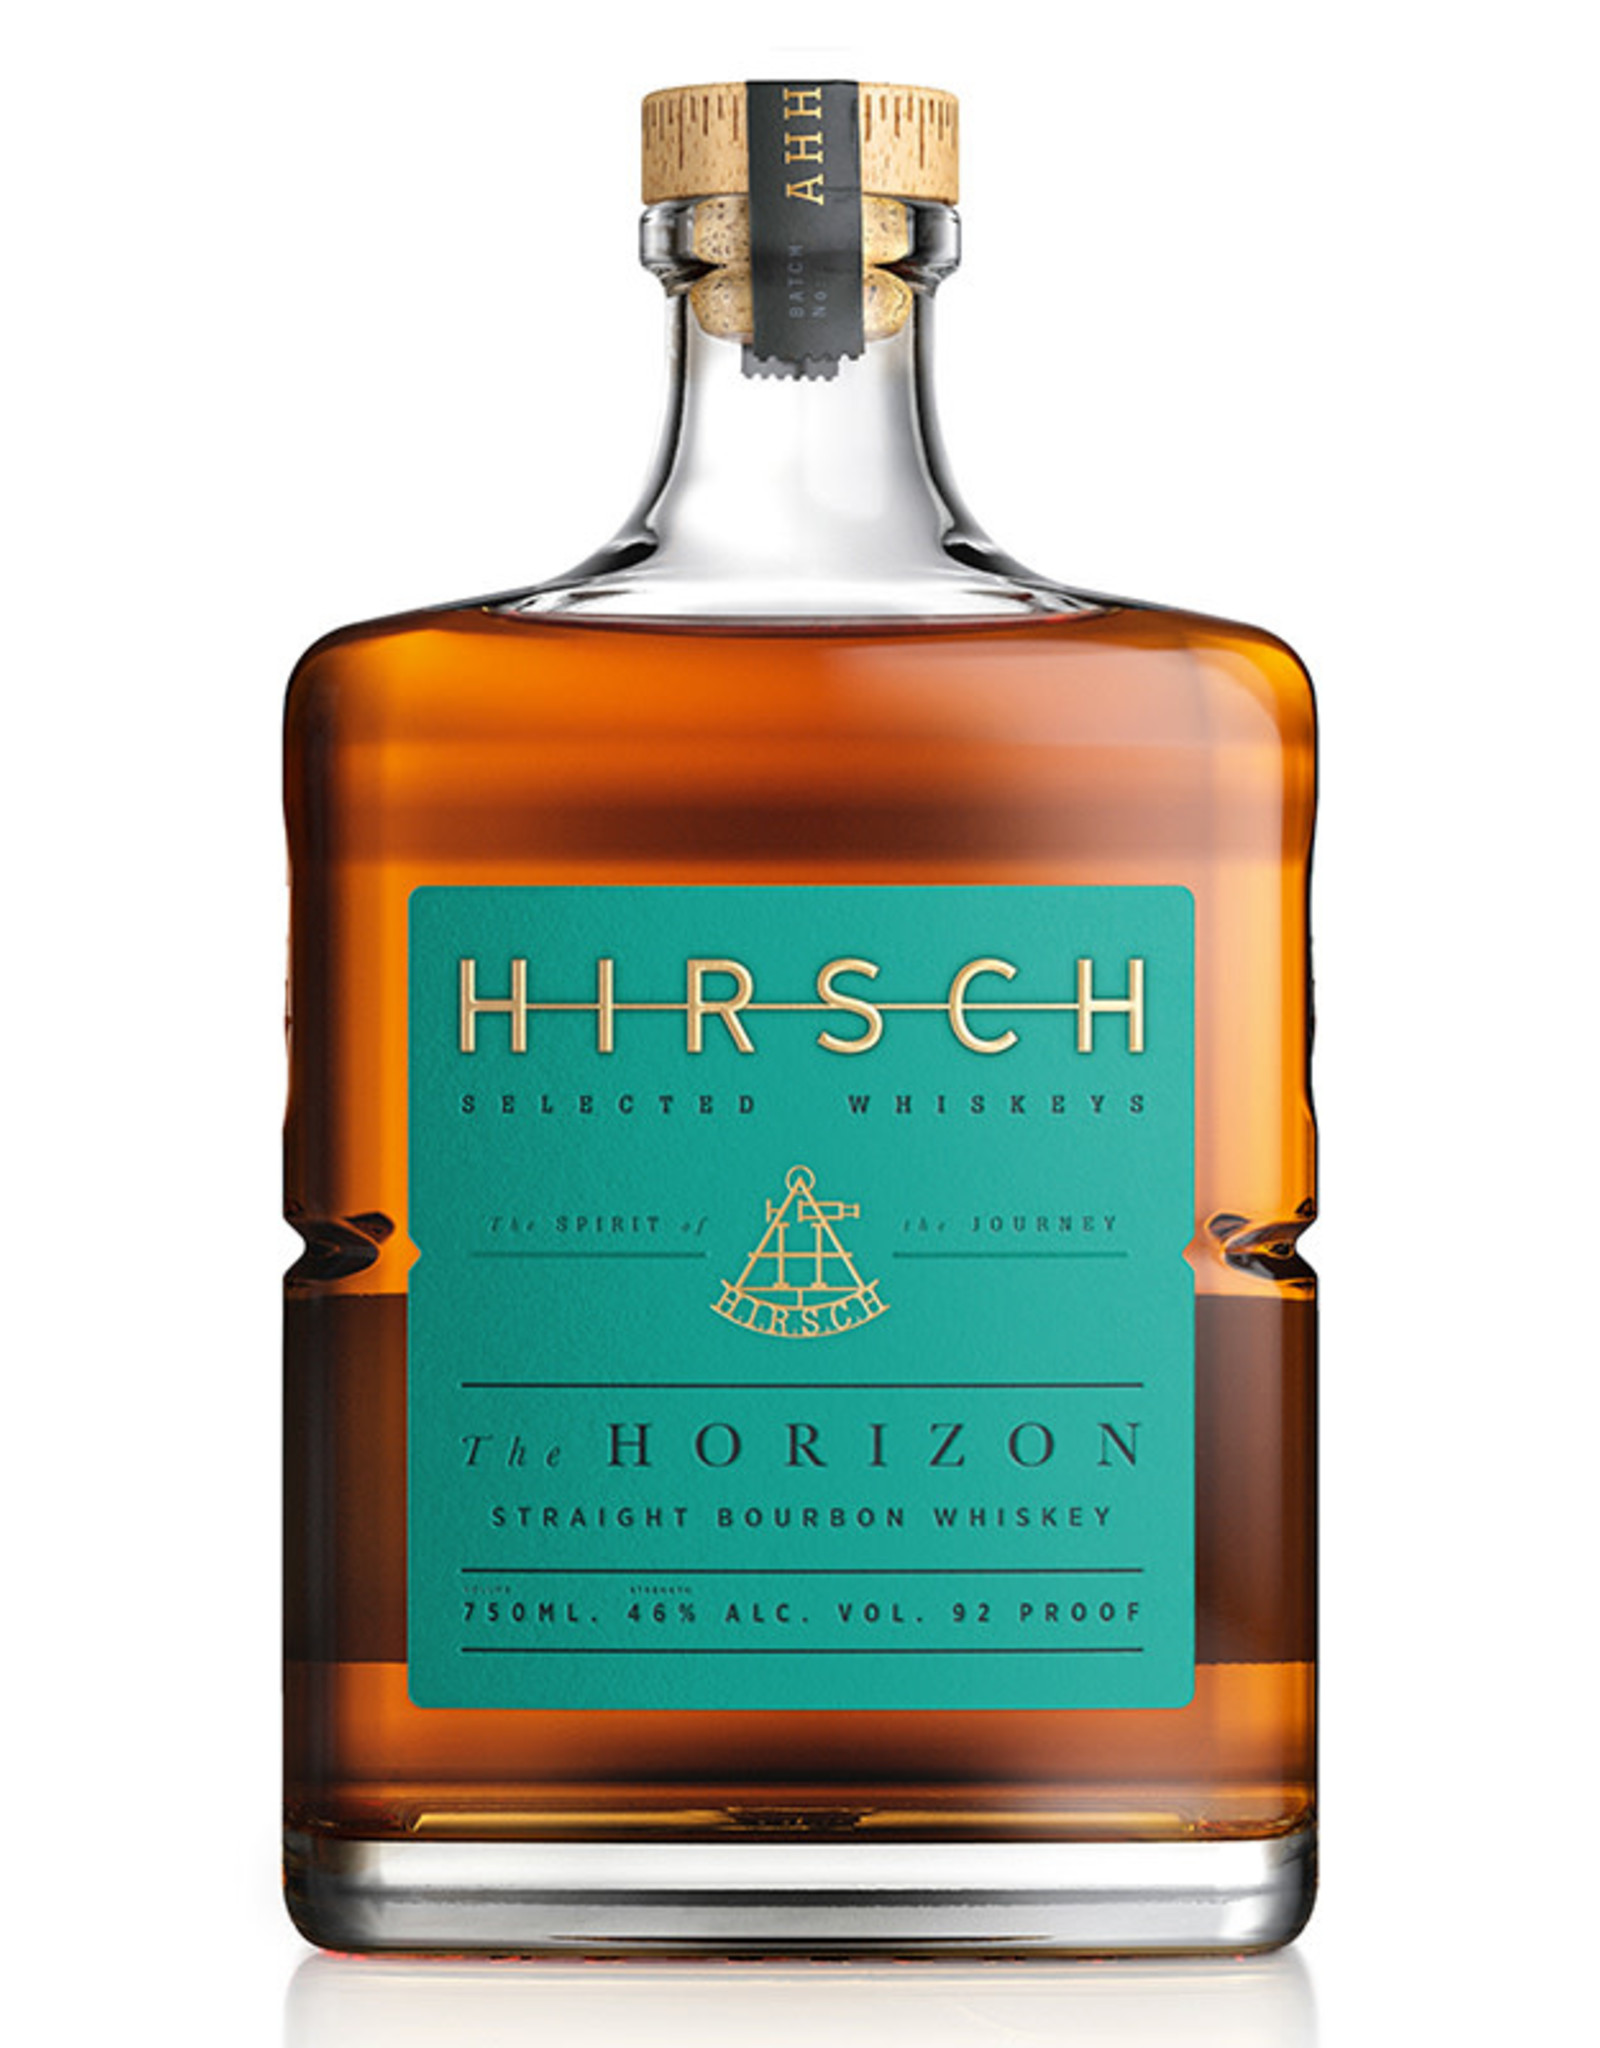 USA Hirsch The horizon Bourbon Whiskey